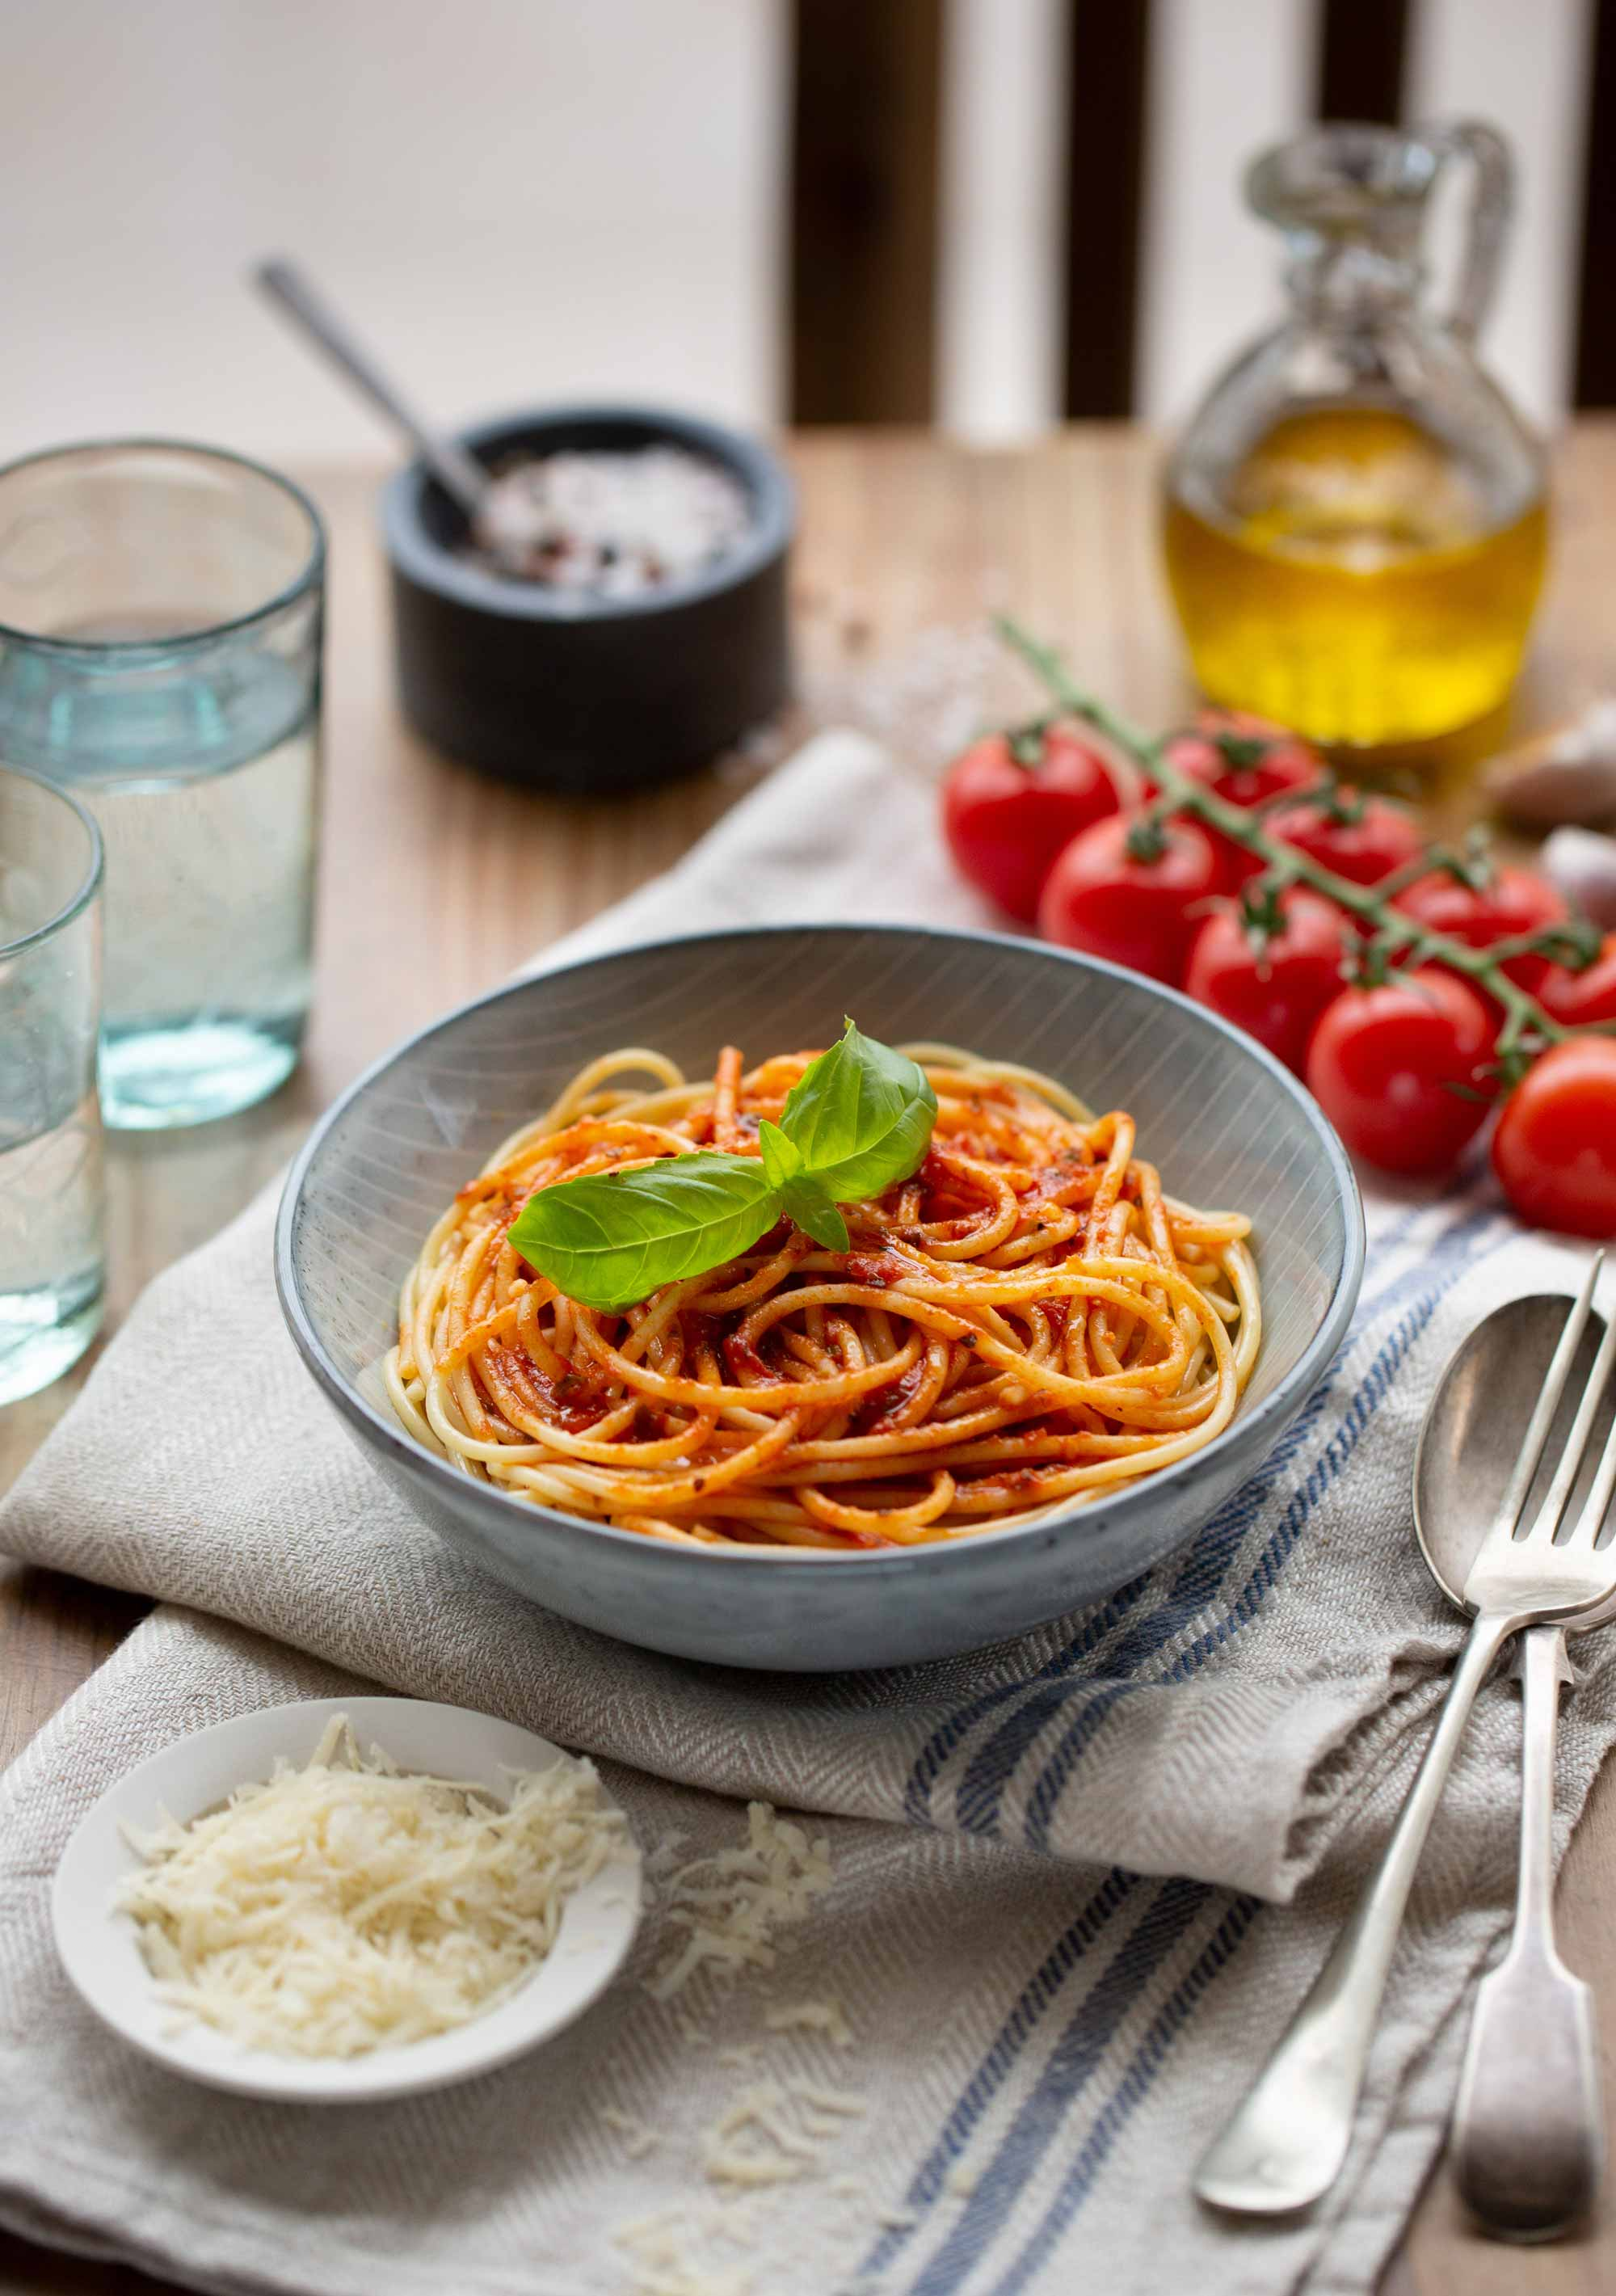 Food photograph of a bowl of pasta